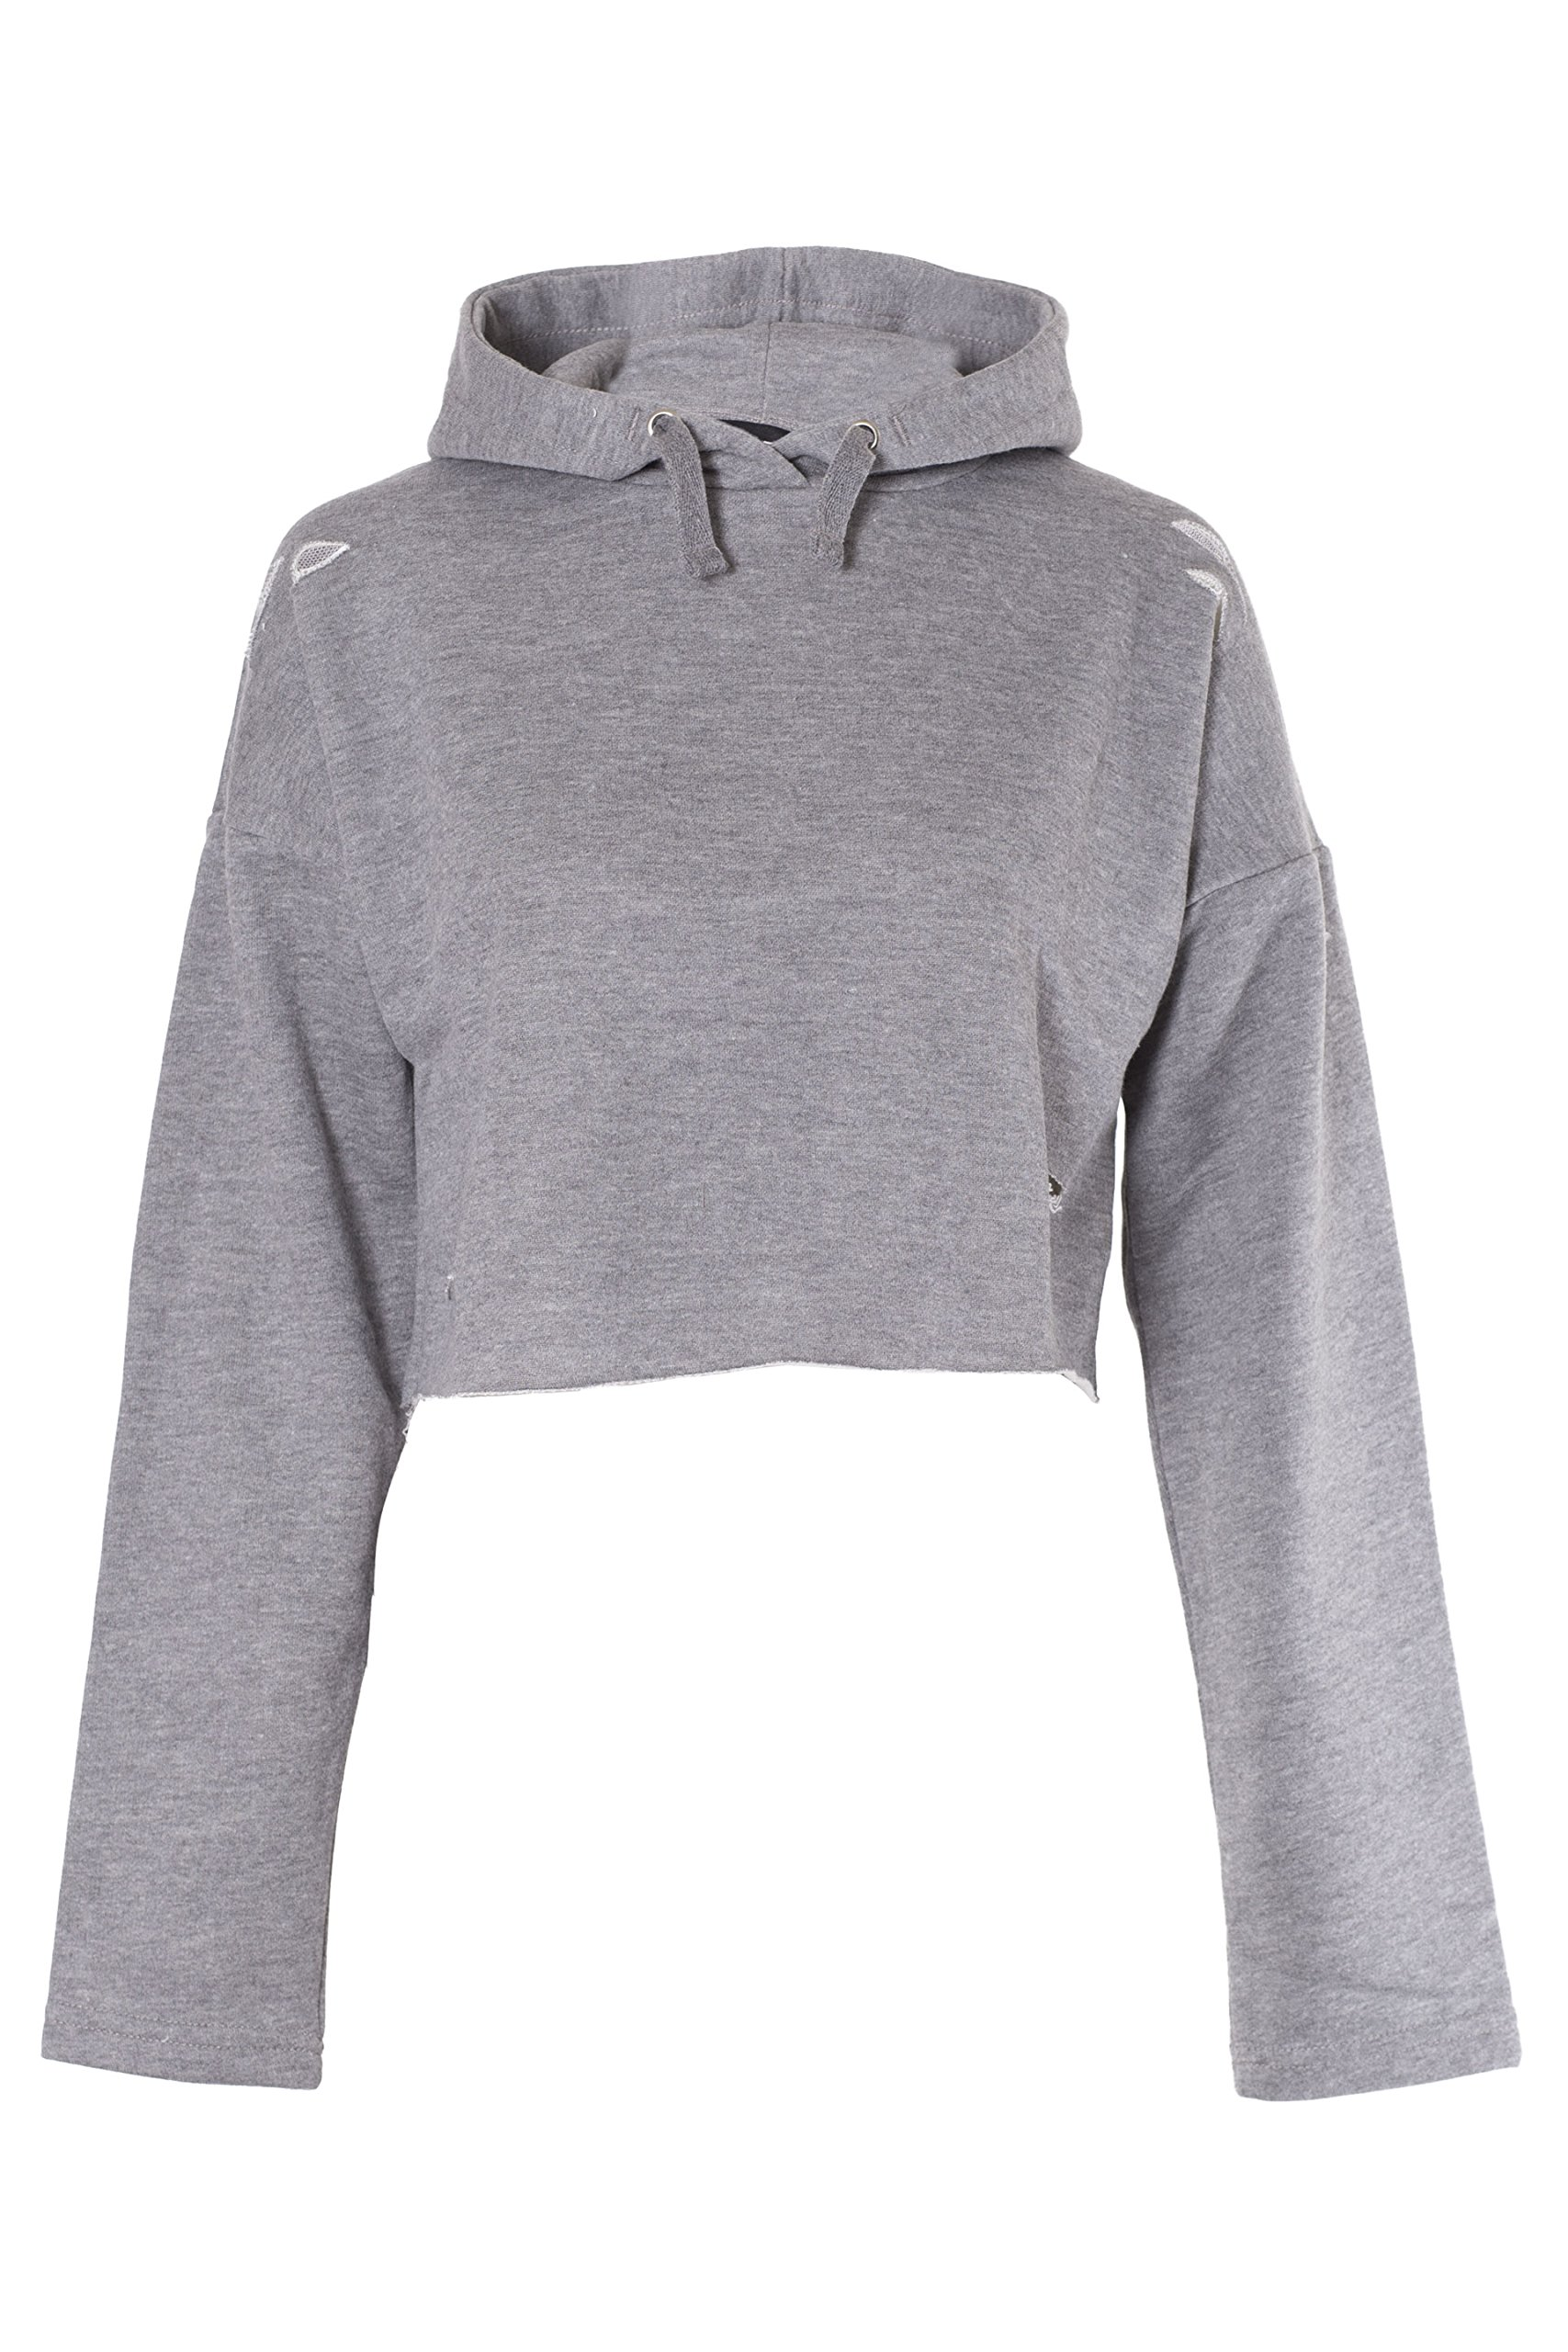 Noroze Girls Plain Crop Top Ripped Hoodie (Charcoal, 9-10 Years)